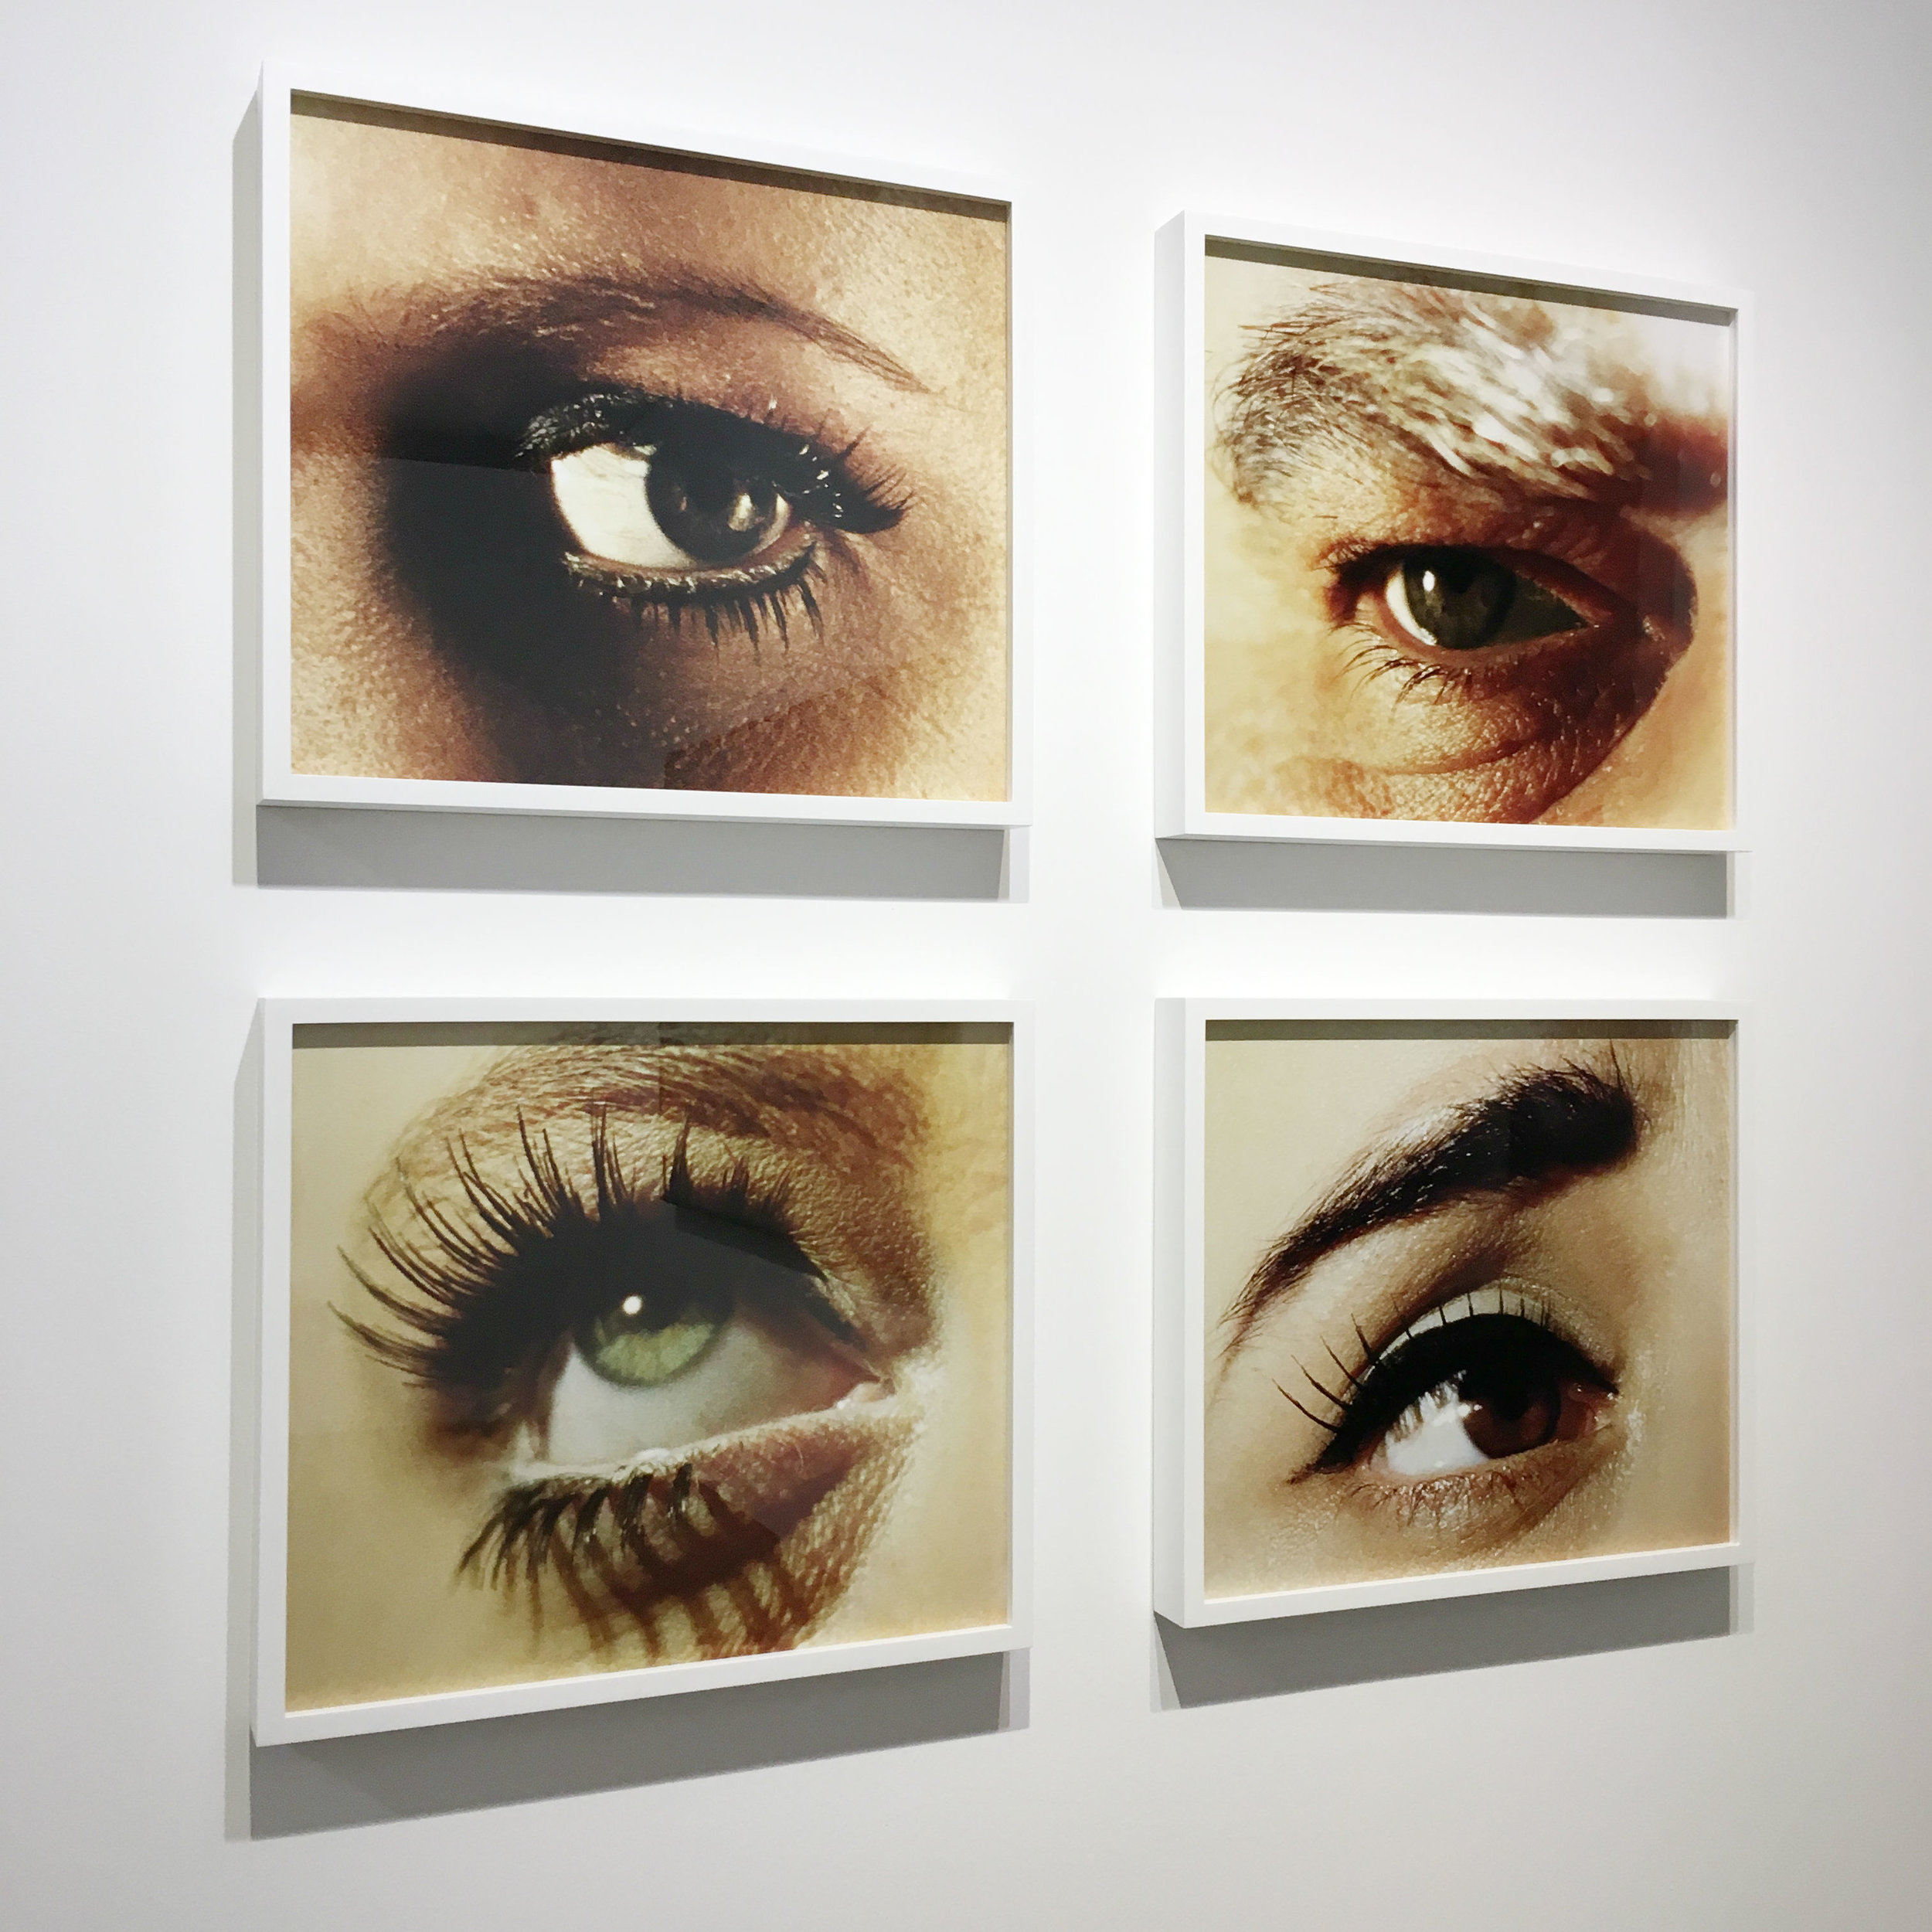 From an exhibition of Alex Prager's work at the Photographer's Gallery in London.